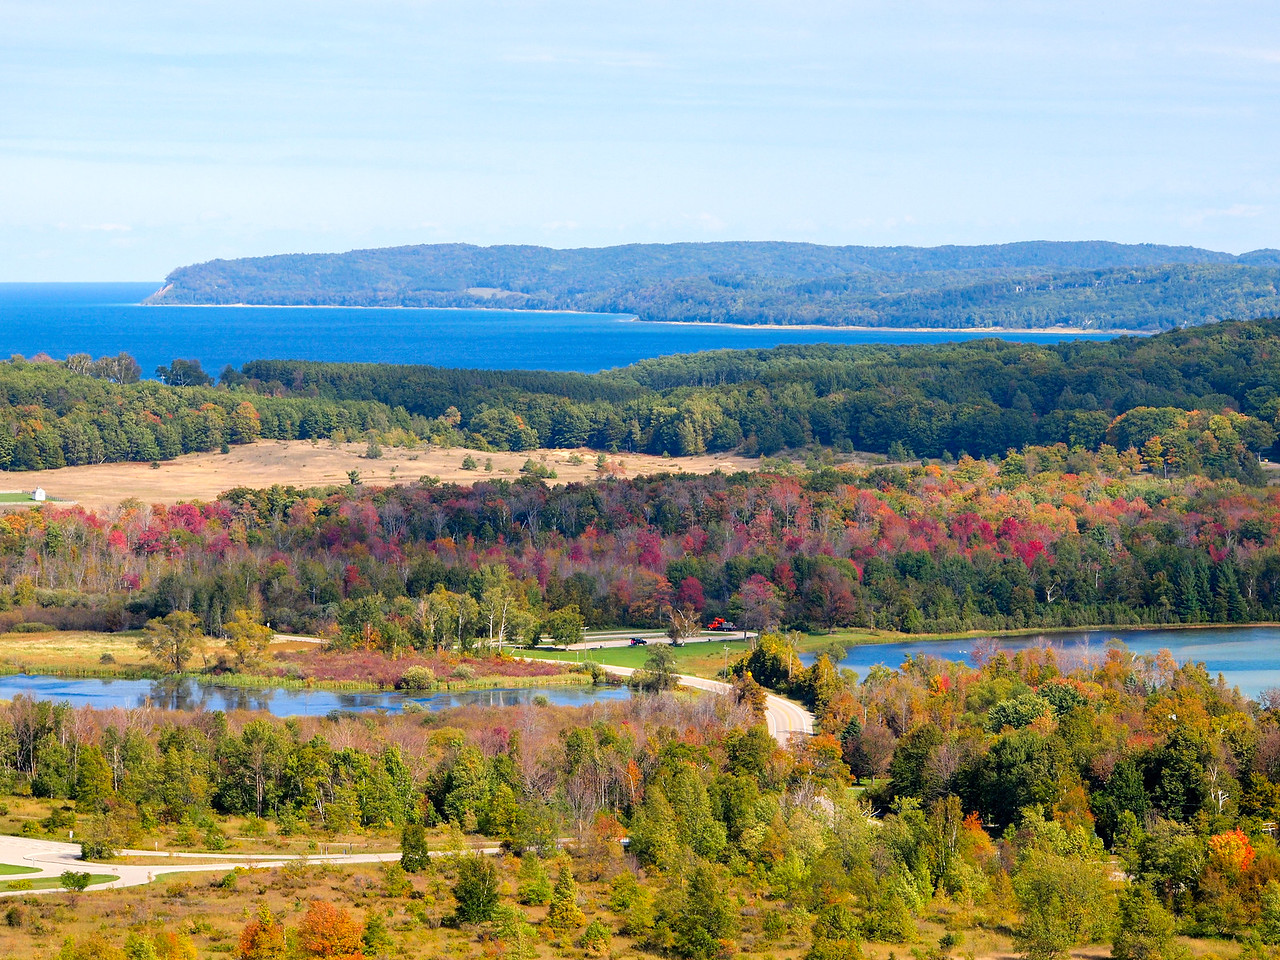 Leelanau Peninsula views